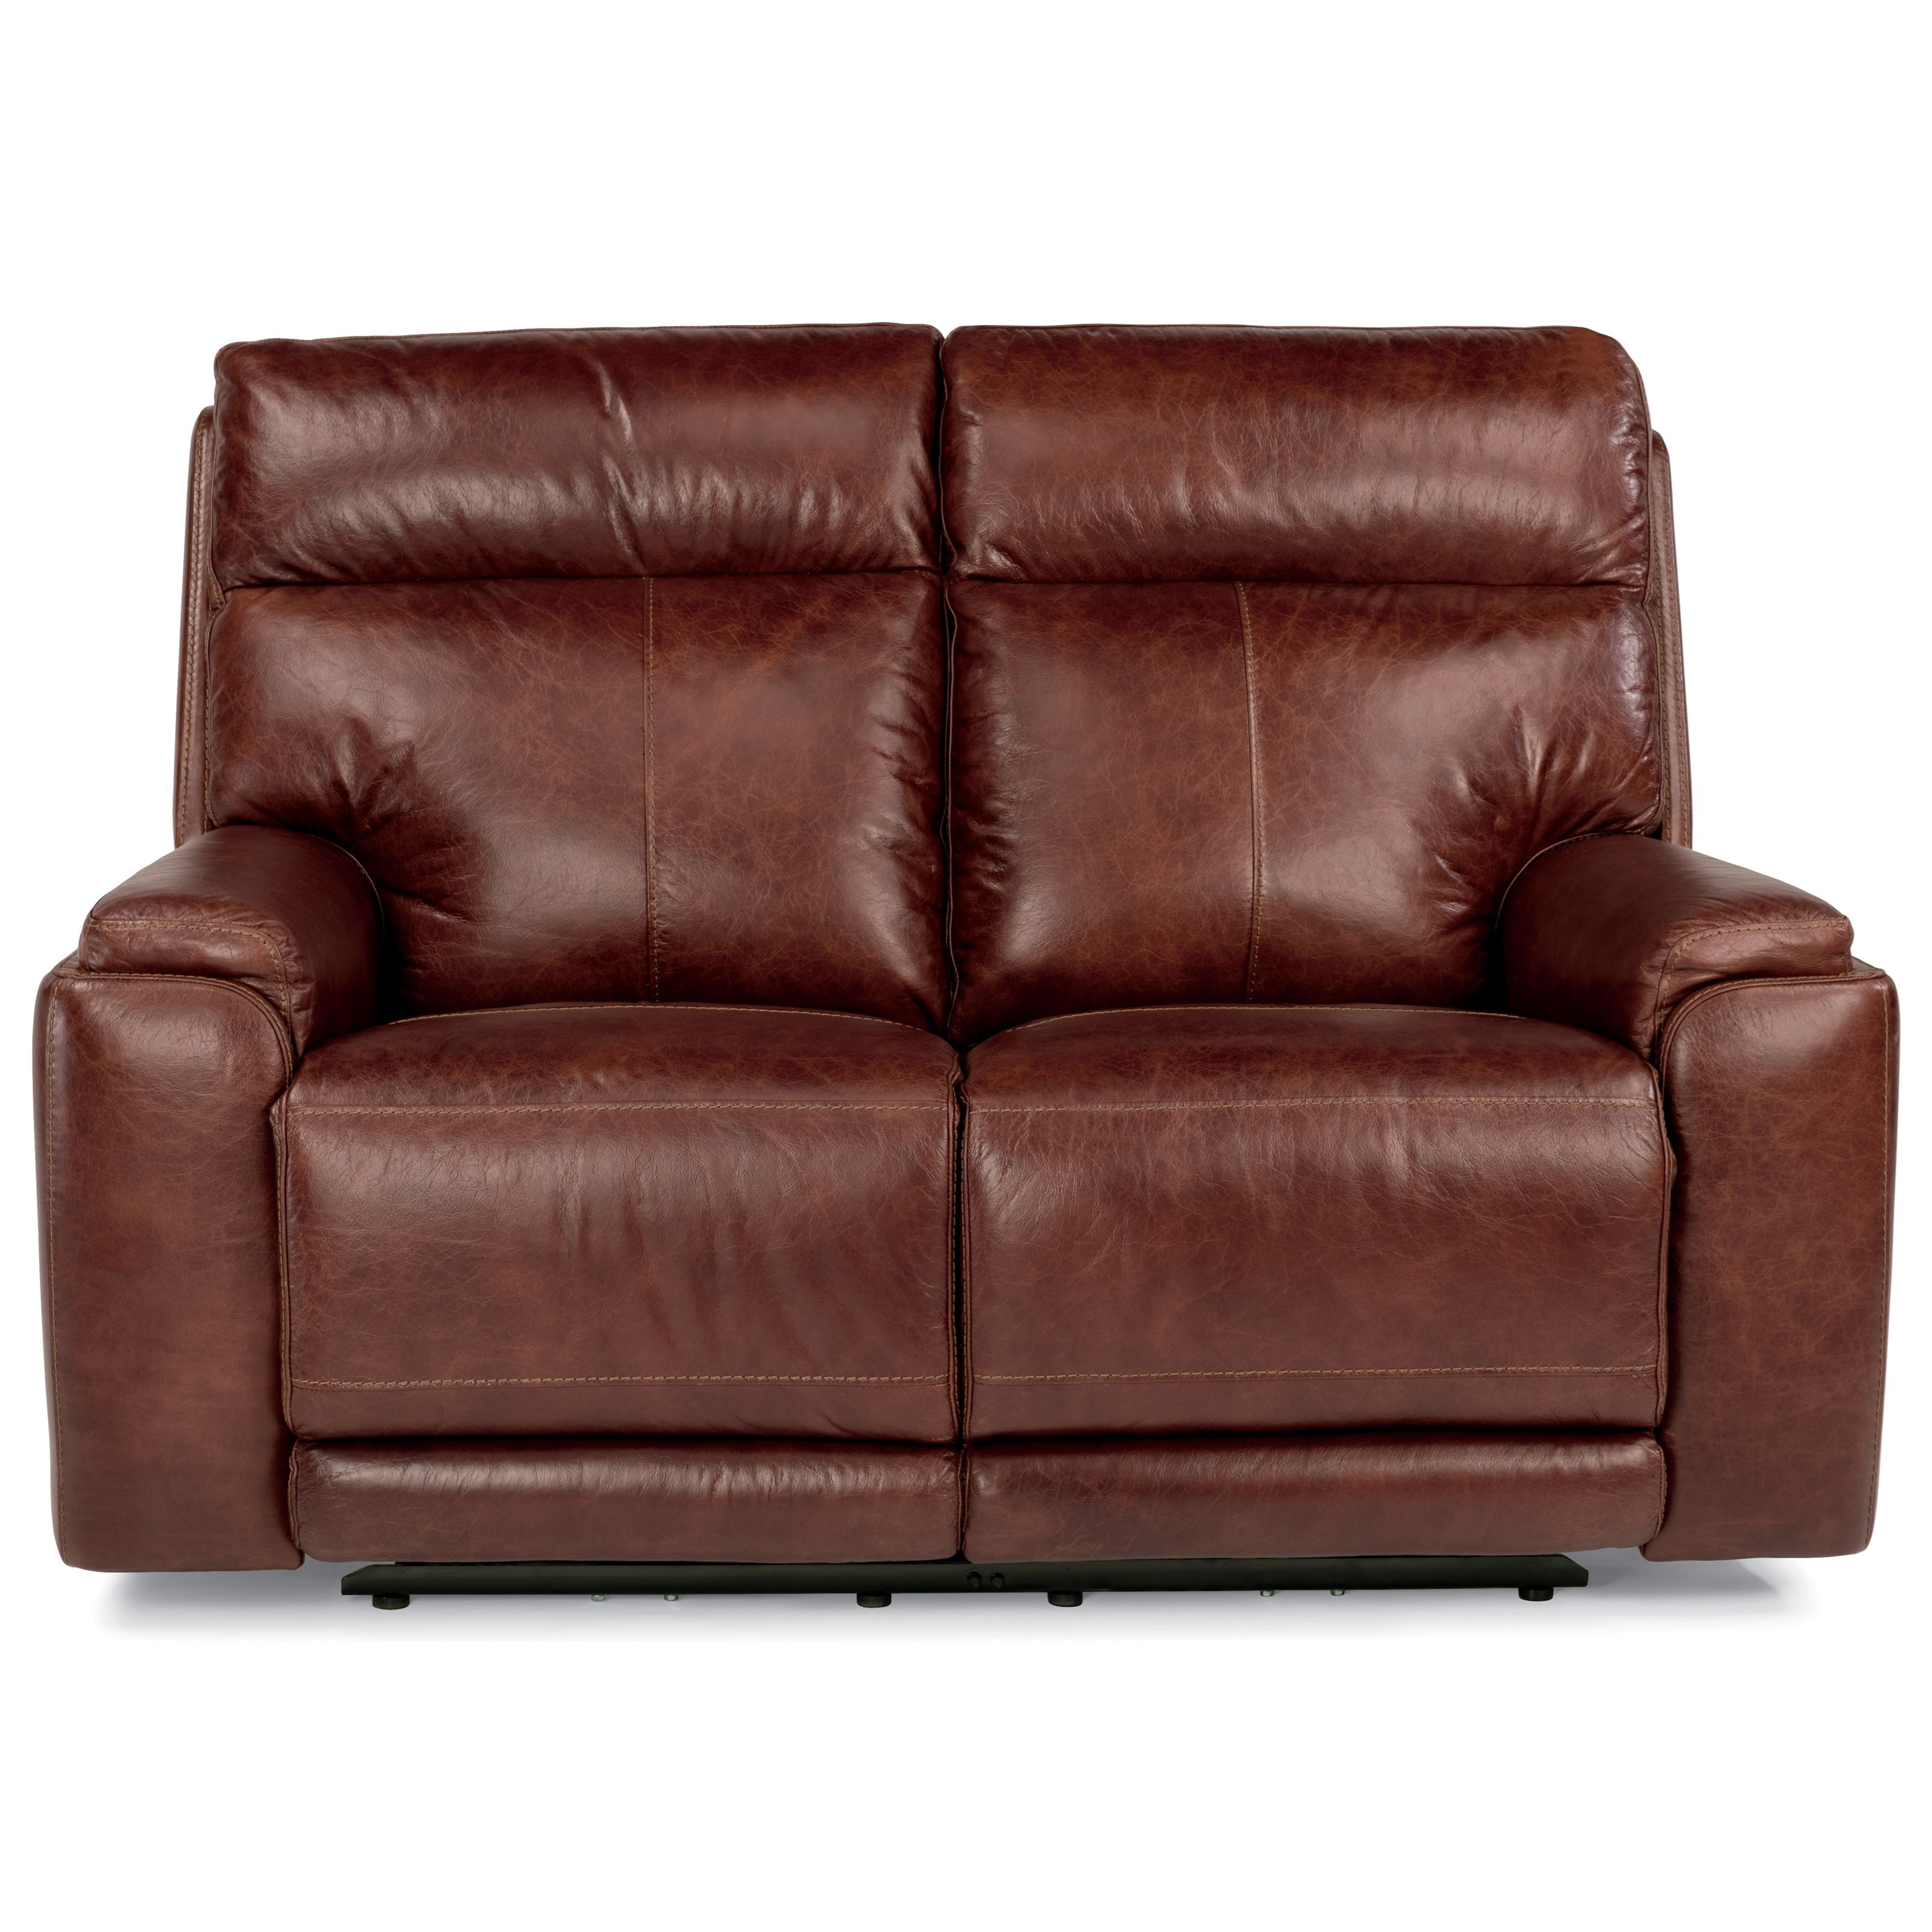 Power Reclining Love Seat with USB Ports